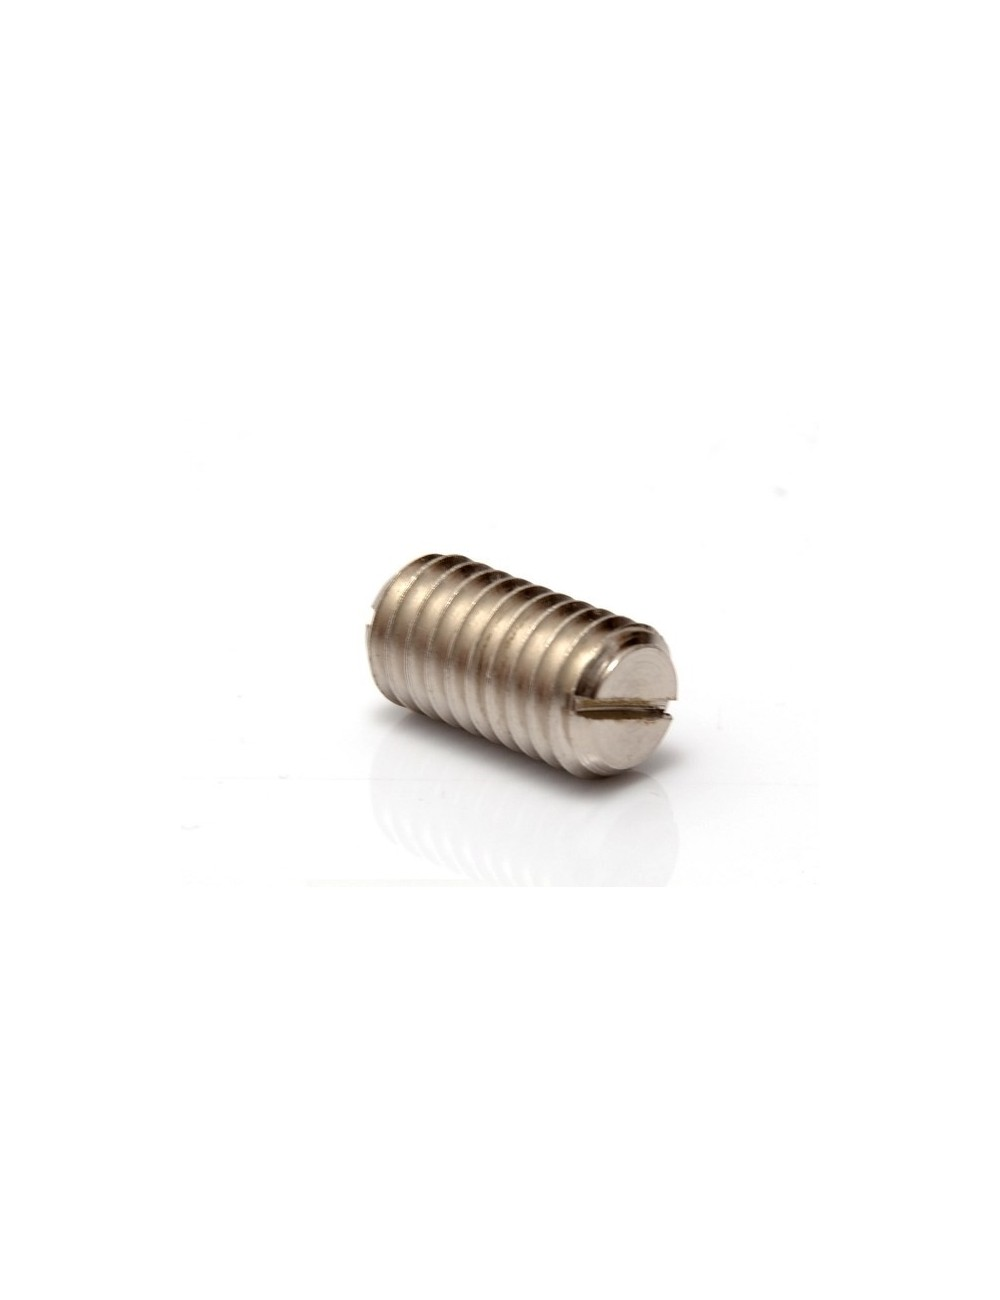 "Reduction screw 3/8"" for screwdriver flathead L-18mm"